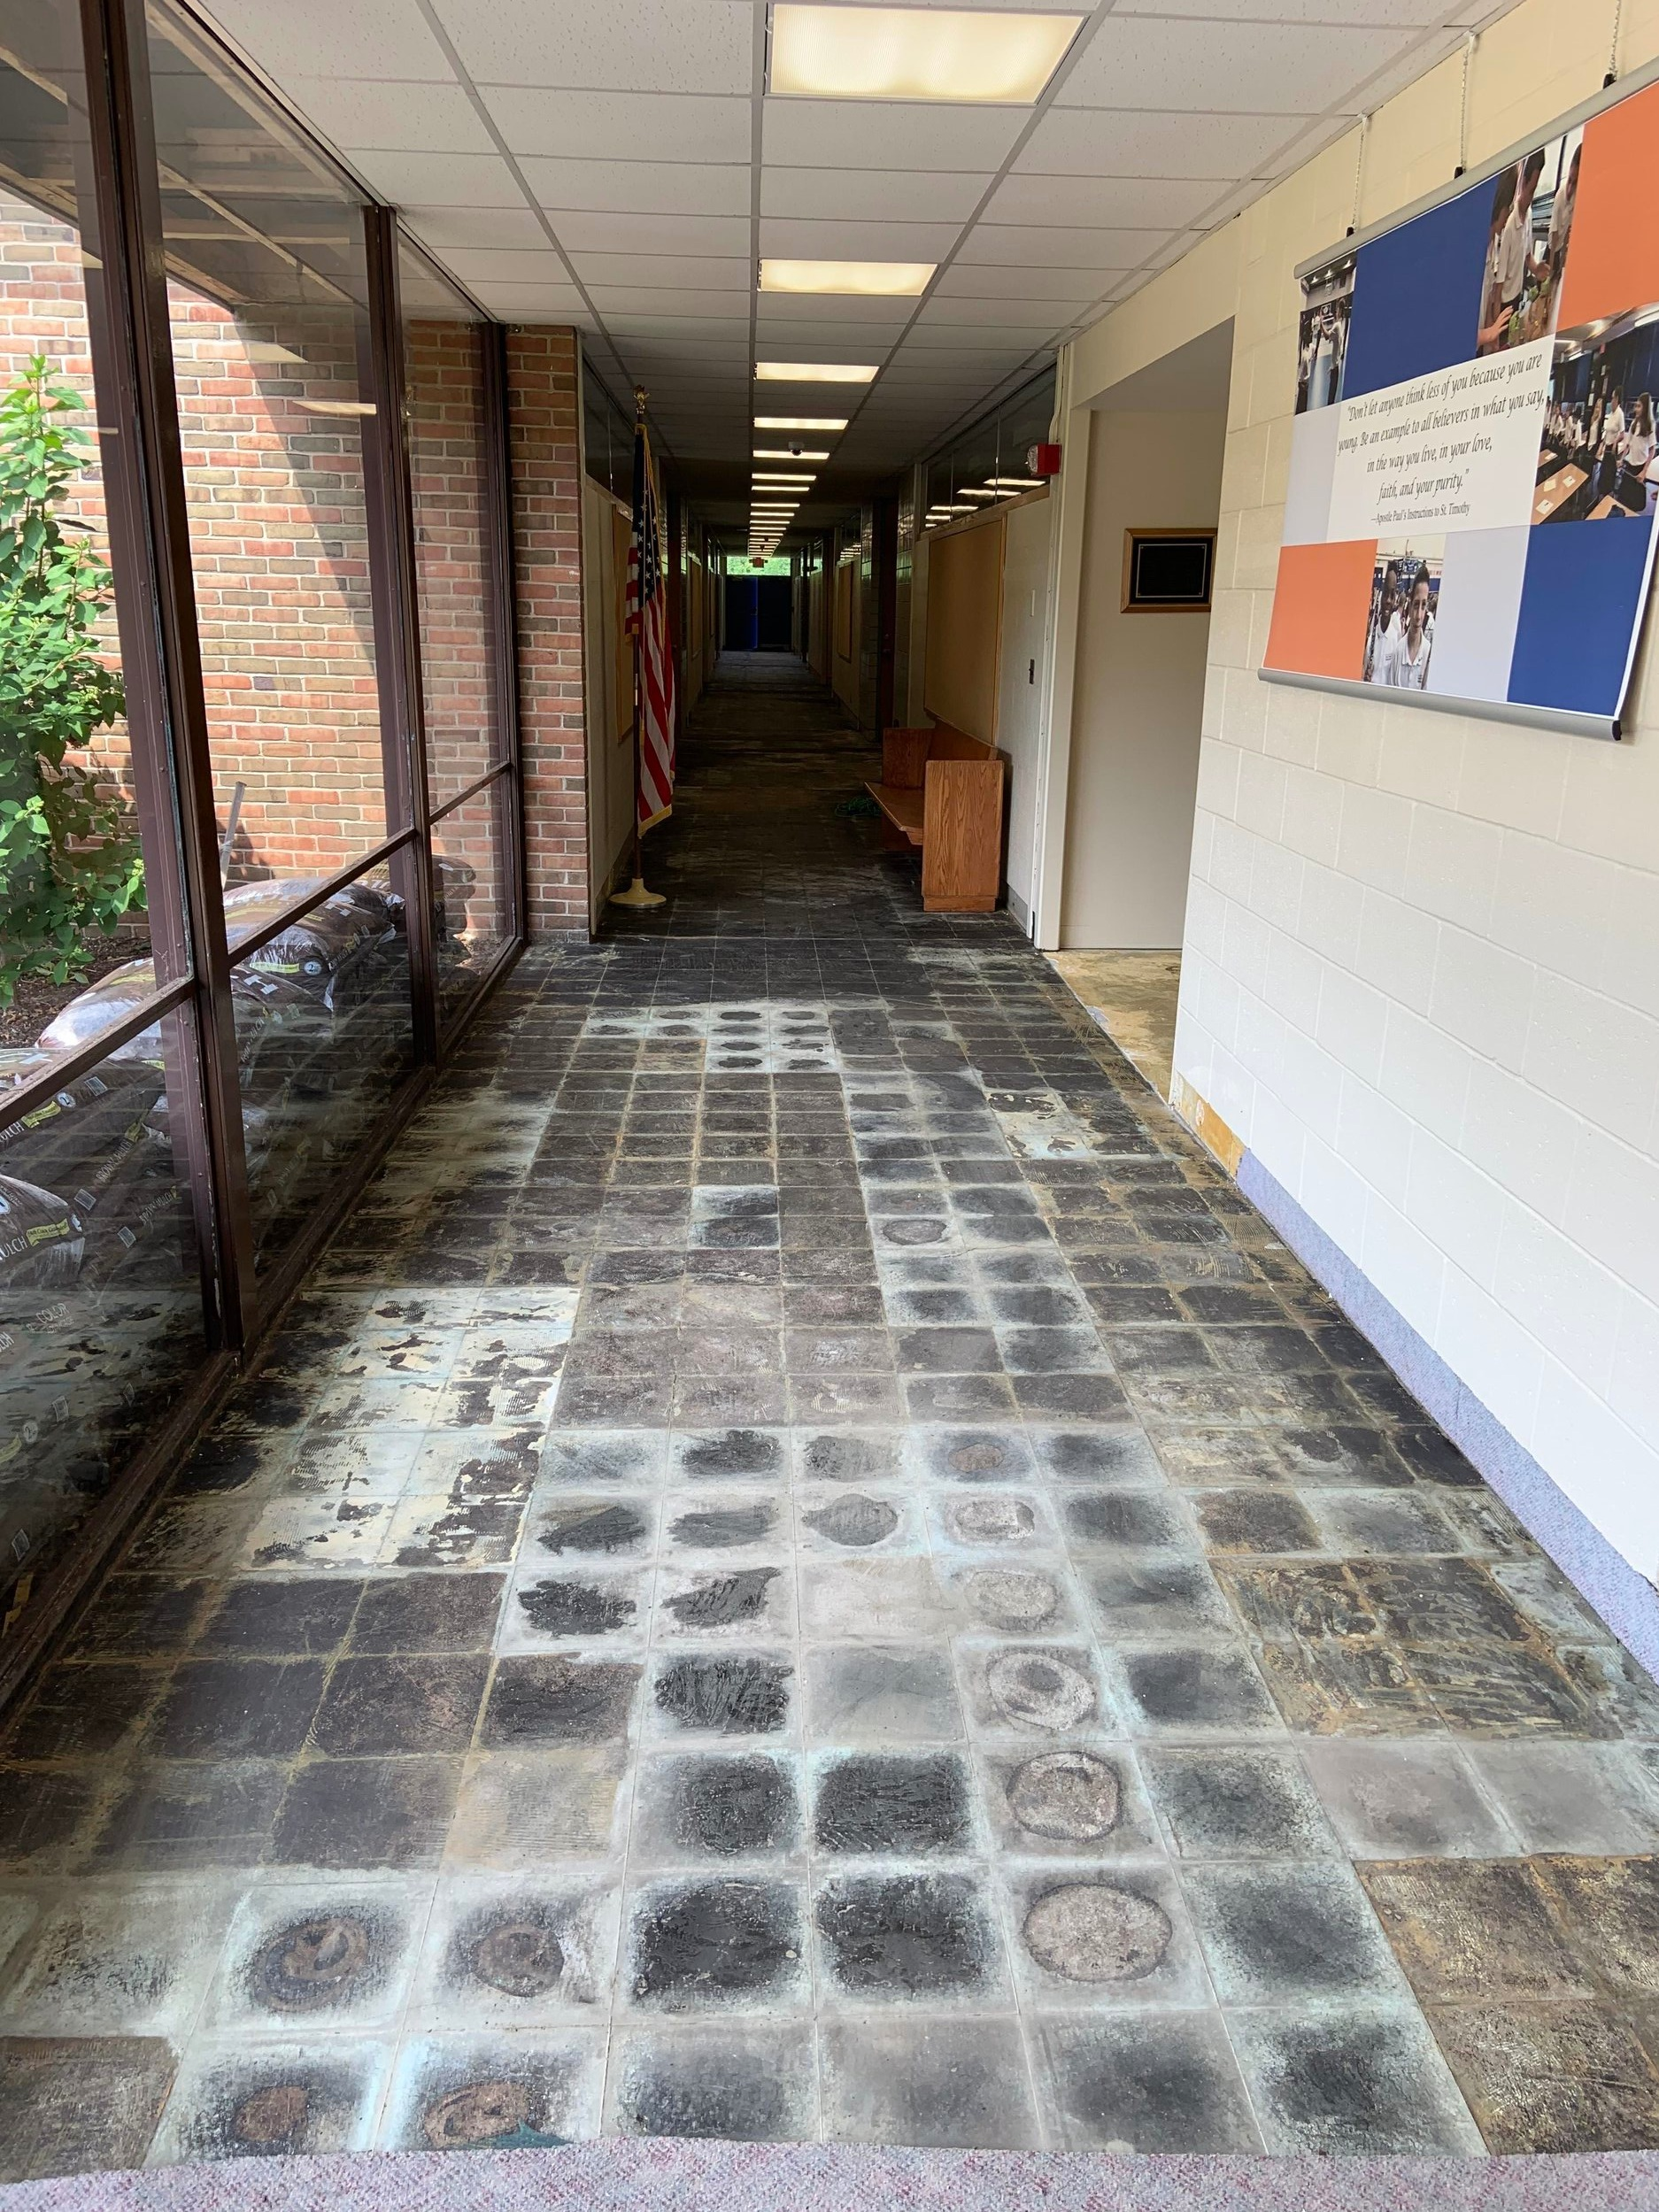 Beginning stages of the installation of new carpets throughout the school.